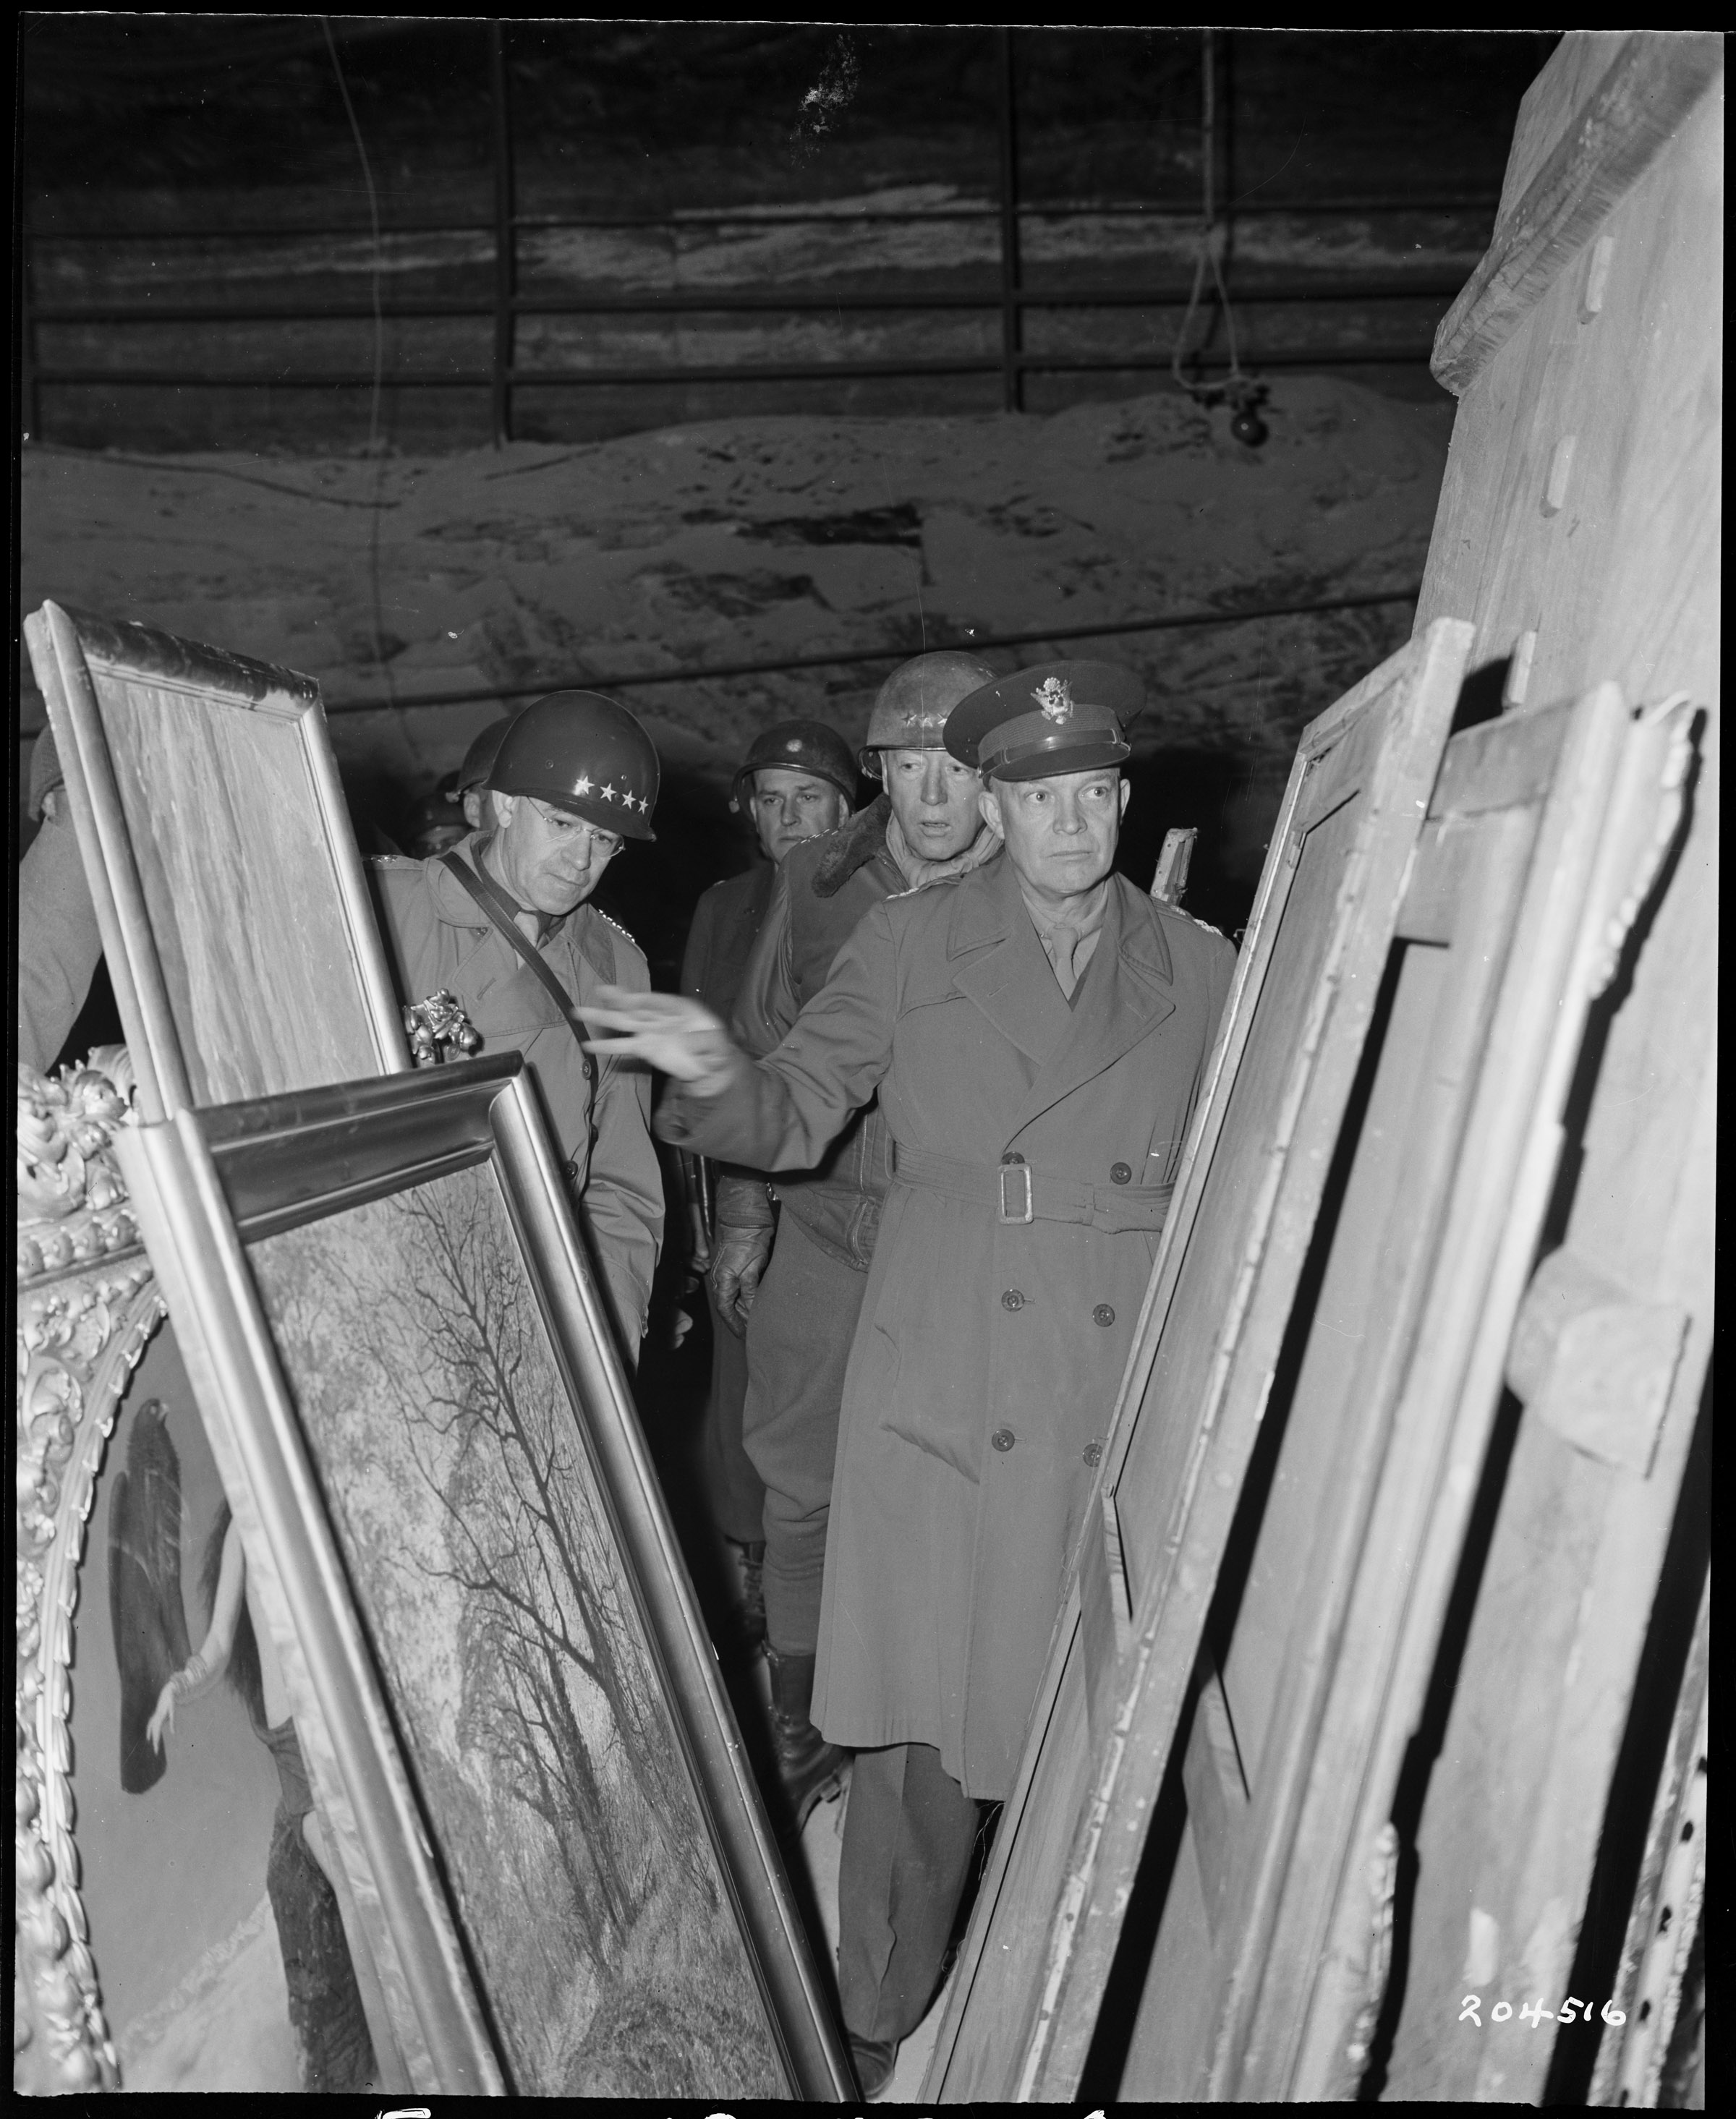 General Dwight D Eisenhower, Supreme Allied commander, inspects art treasures looted by the Germans and stored away in the Merkers salt mine. National Archives RG 111-SC-204516.